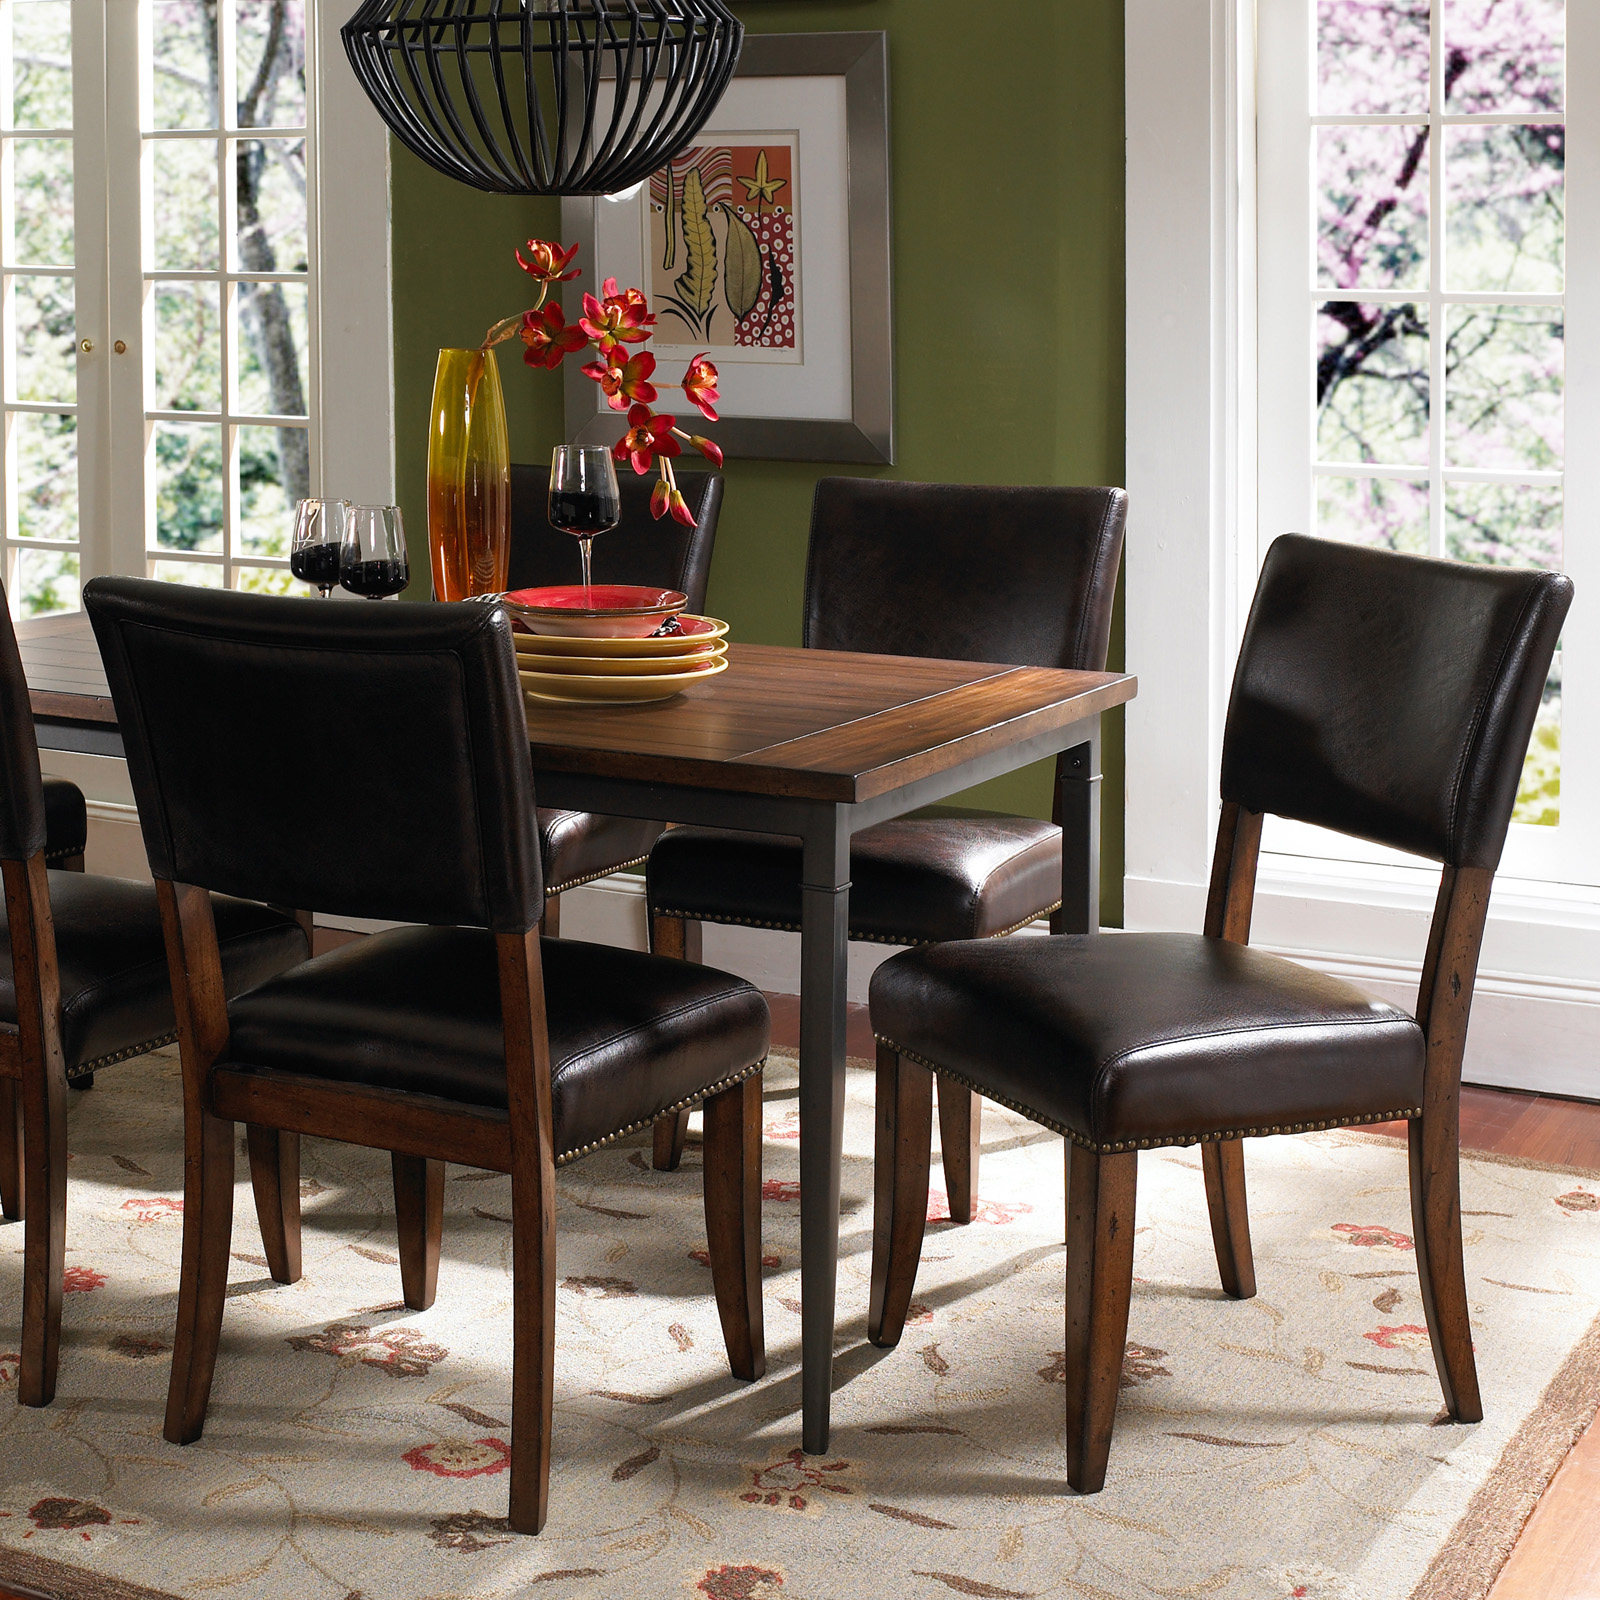 Wood And Metal Dining Table Set With Parson Chairs Dining Table Sets. Full resolution‎  file, nominally Width 1600 Height 1600 pixels, file with #A02C2C.